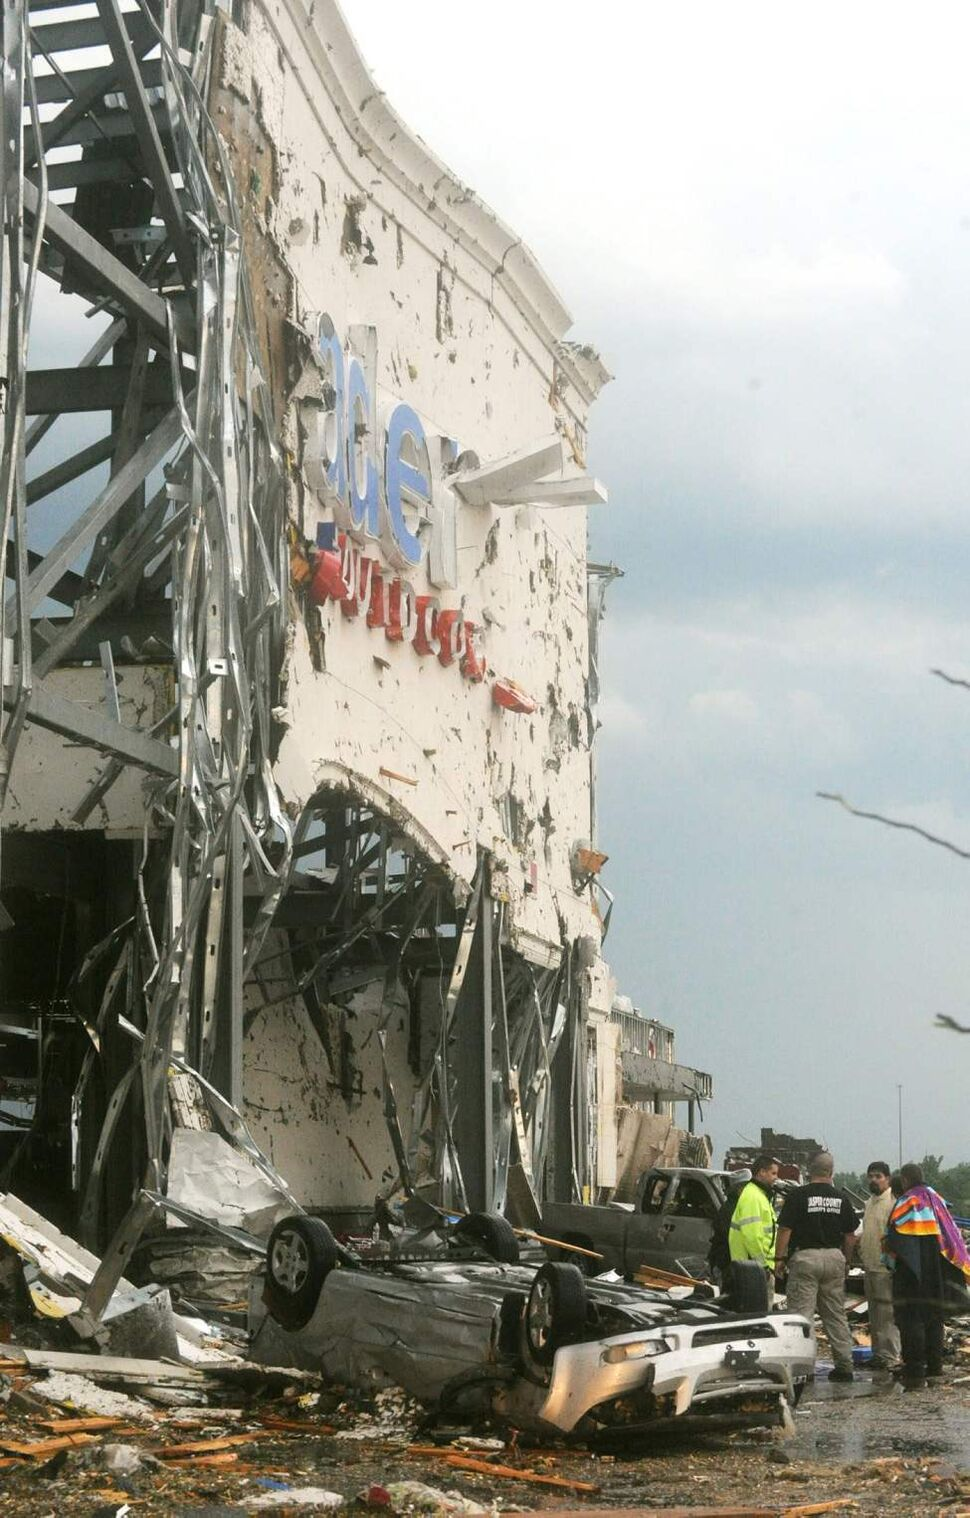 Emergency personnel assess the damage of the remains of the Academy Sports building at 17th St. and Range Line Road in Joplin, Mo. following the tornado that struck the city on Sunday evening. (Roger Nomer / The Associated Press)